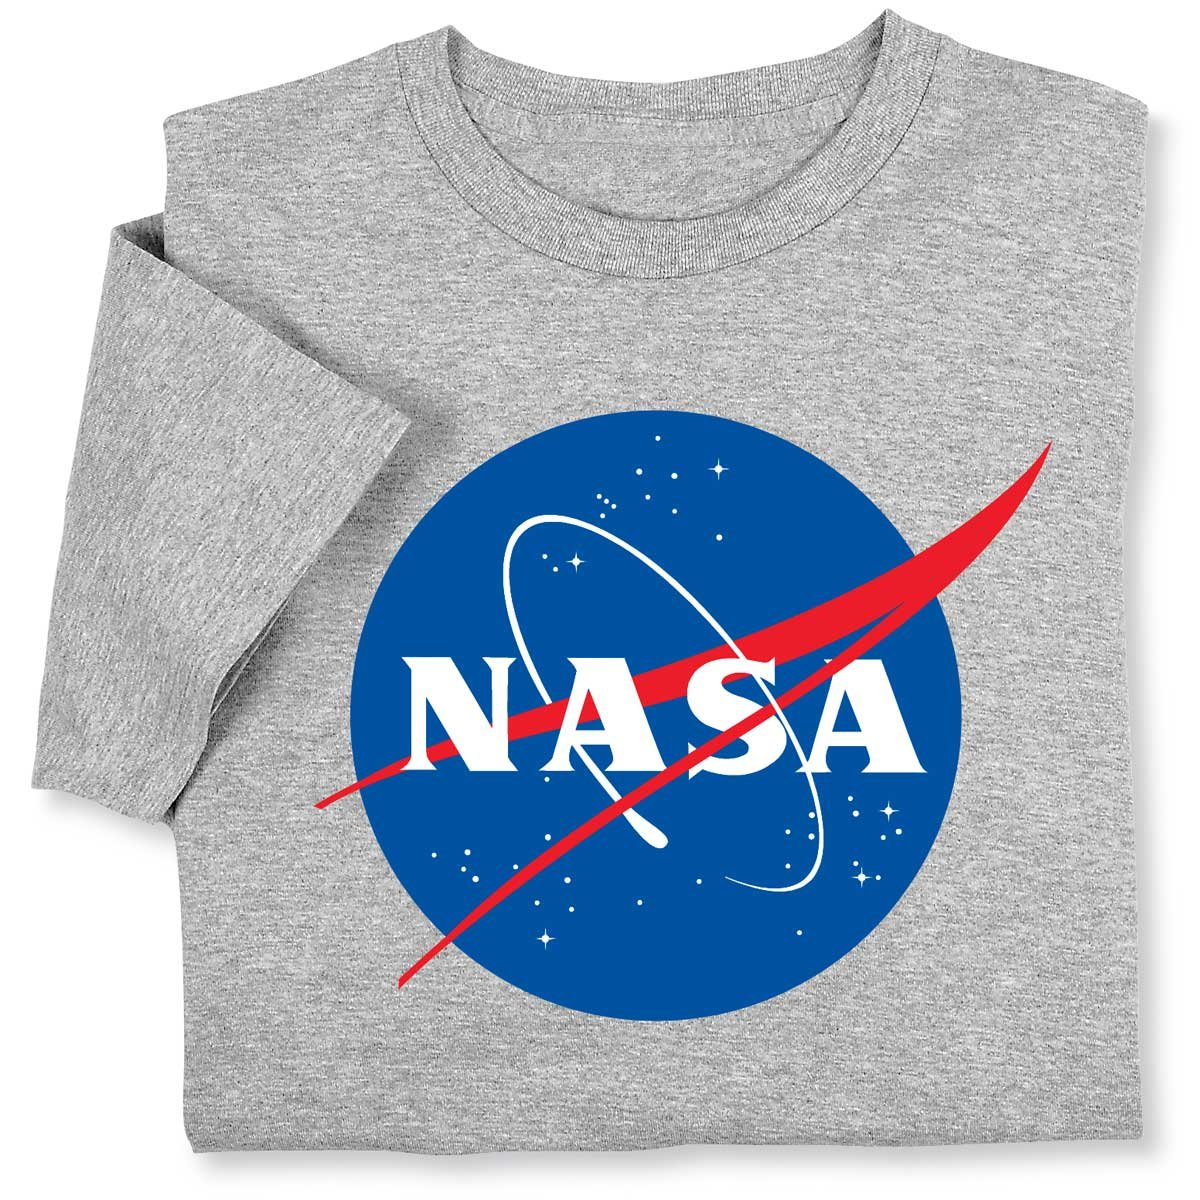 70890950 NASA Tshirts mens womens for men women boys girls fits Youth S fits ages  (4-6), Youth M (8-10), Youth L (12-14), Adult Medium fits chest 38-40  inches, ...